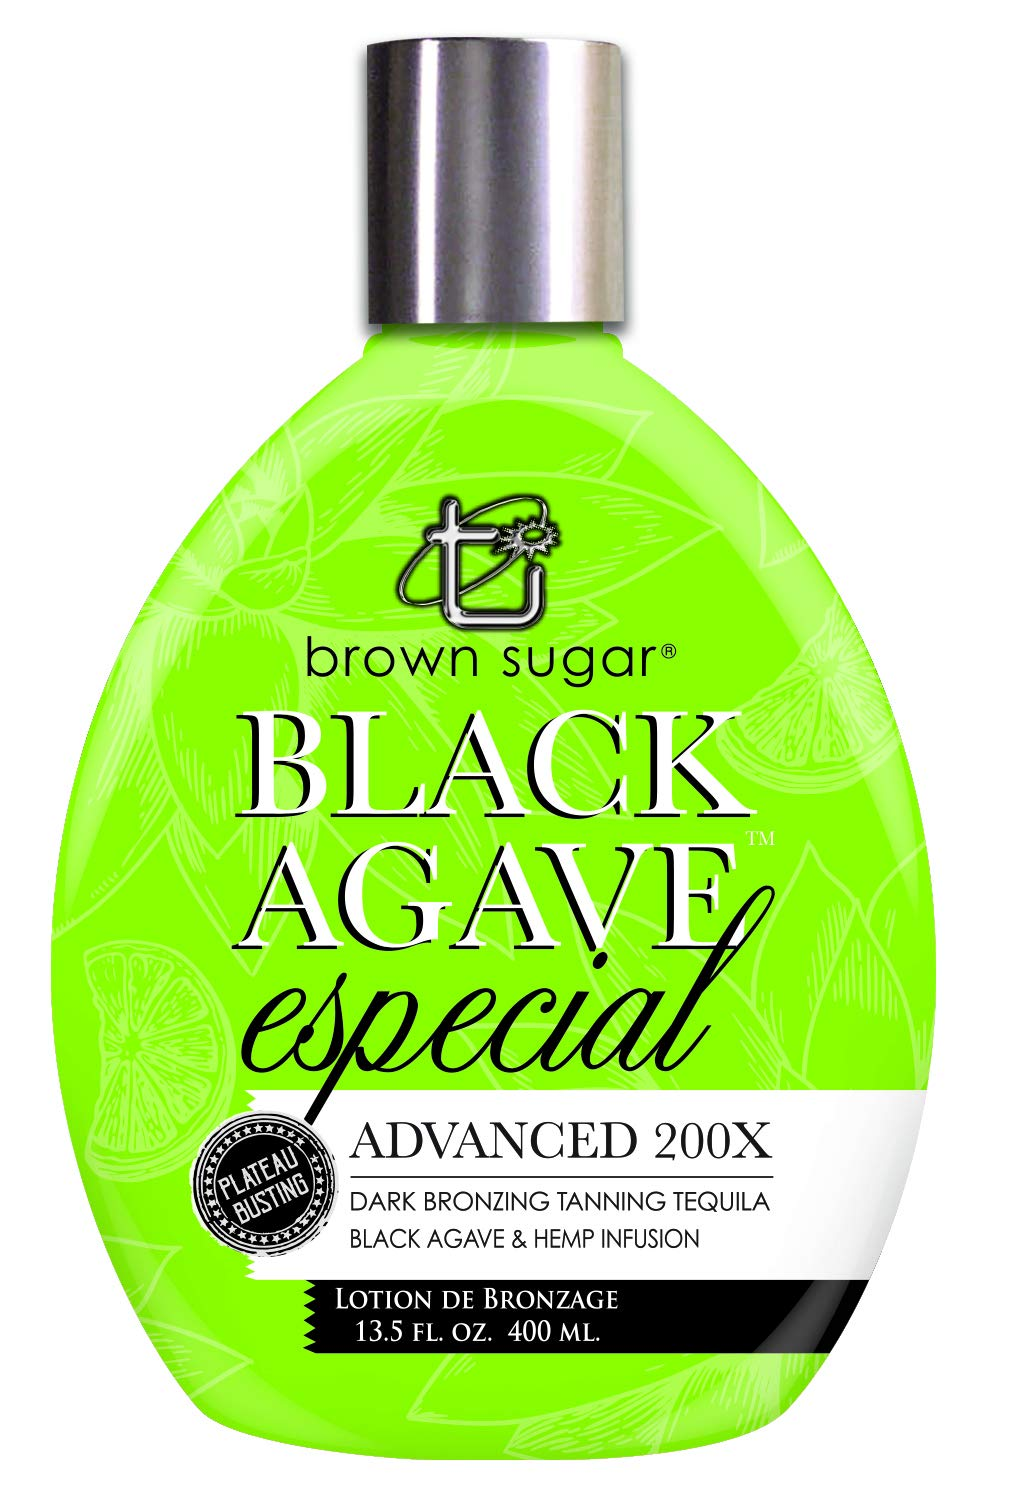 Brown Sugar BLACK AGAVE ESPECIAL 200X Dark Bronzer - 13.5 oz. by Brown Sugar